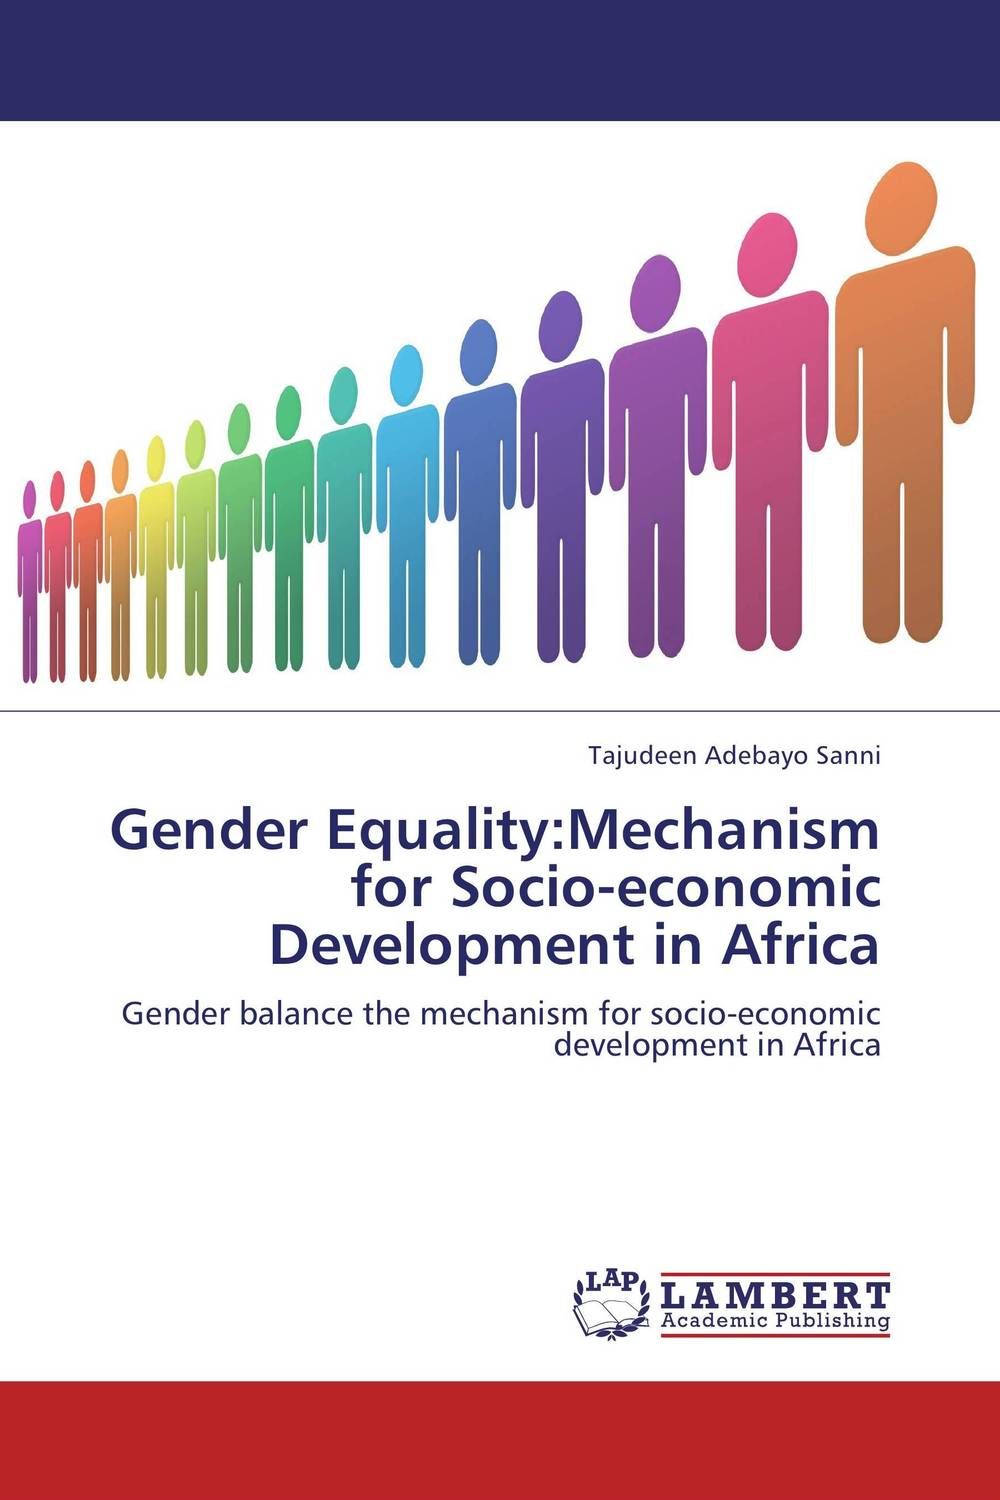 Gender Equality:Mechanism for Socio-economic Development in Africa шкатулка swiss kubik sk01 ae014